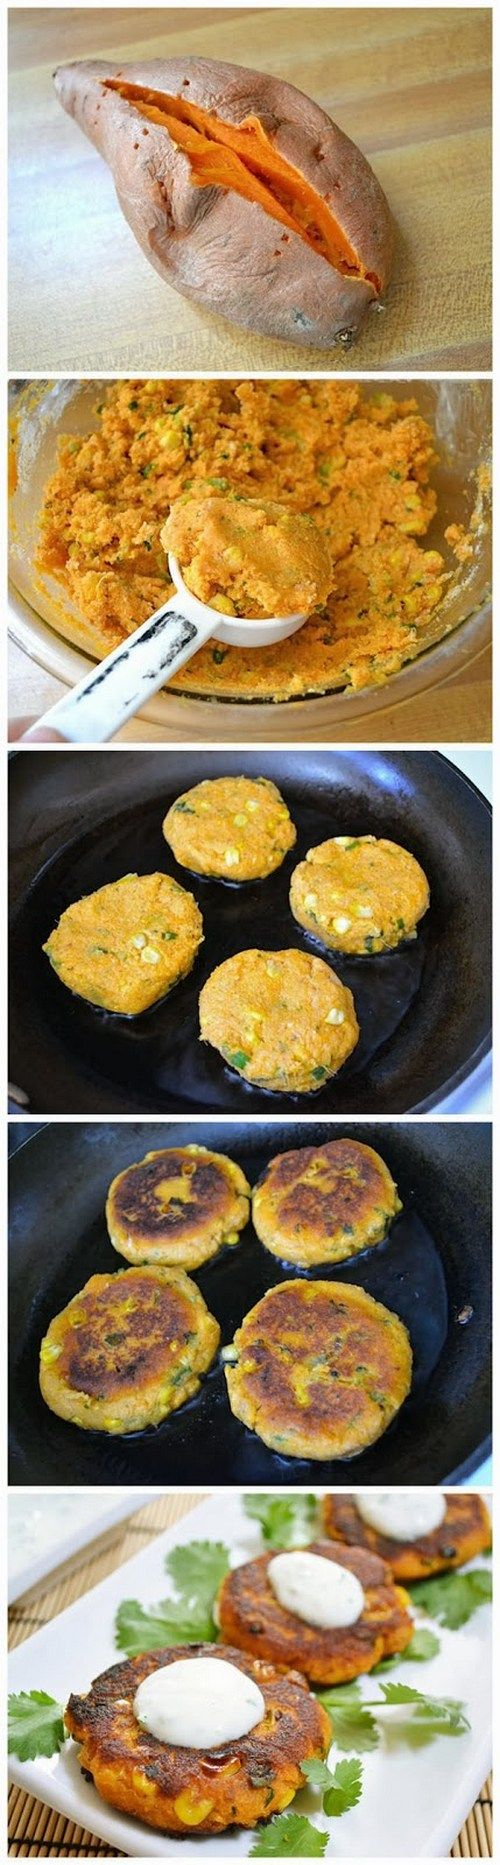 Sweet Potato Corn Cakes with Garlic Dipping Sauce. They're so good that they make you wonder why other food even exists.